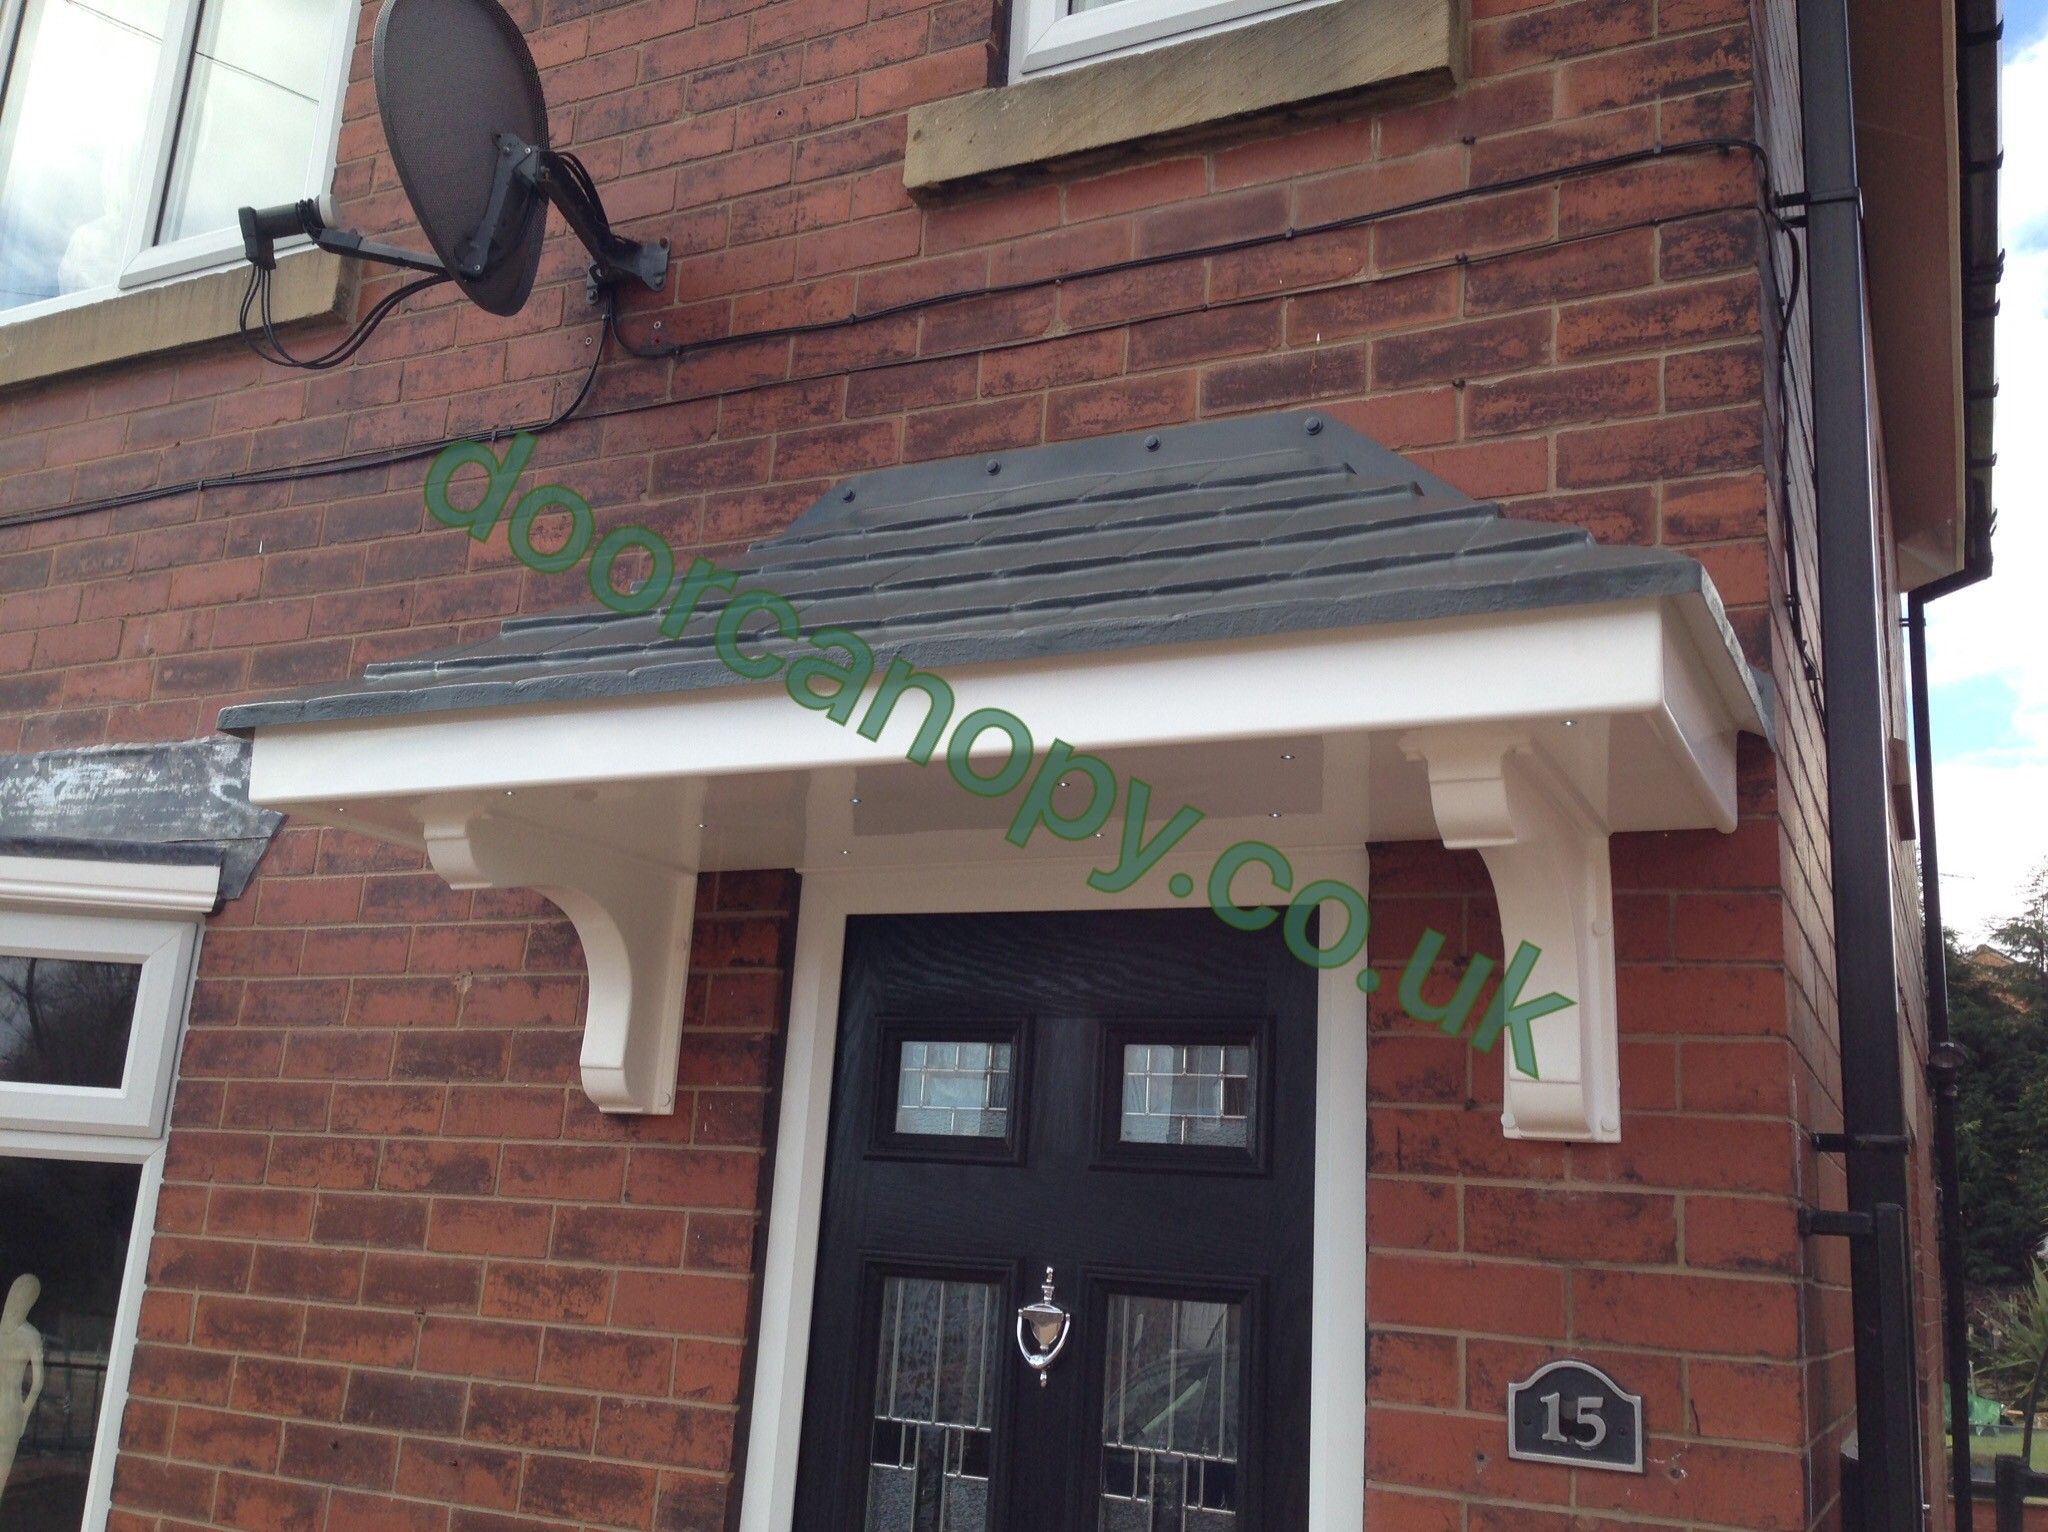 Free fitting on any canopy : door canopy leeds - memphite.com